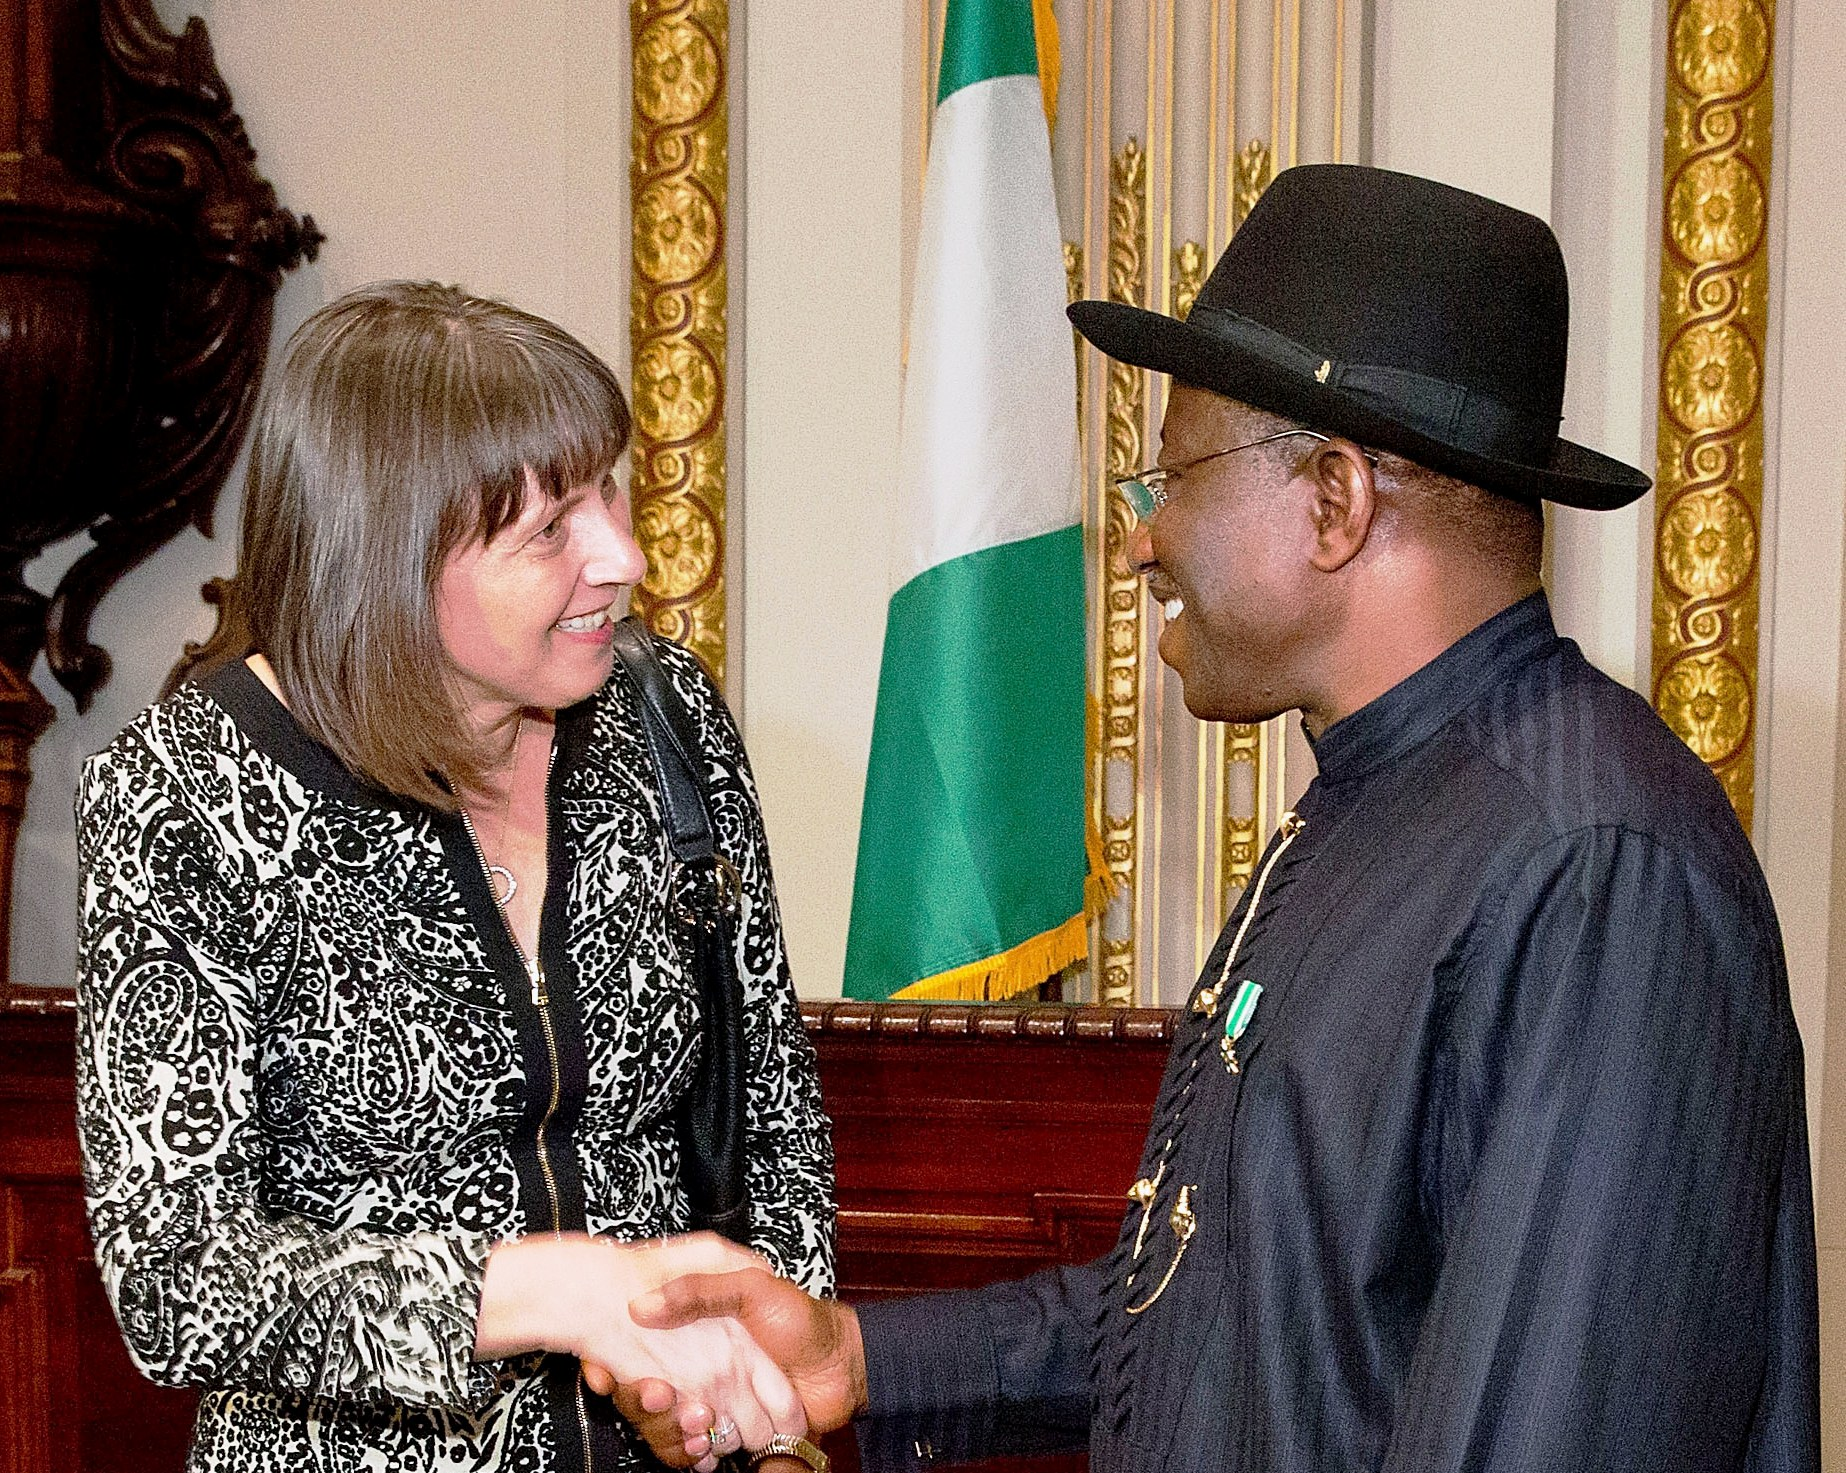 Martina Hund-Majean and Goodluck Jonathan